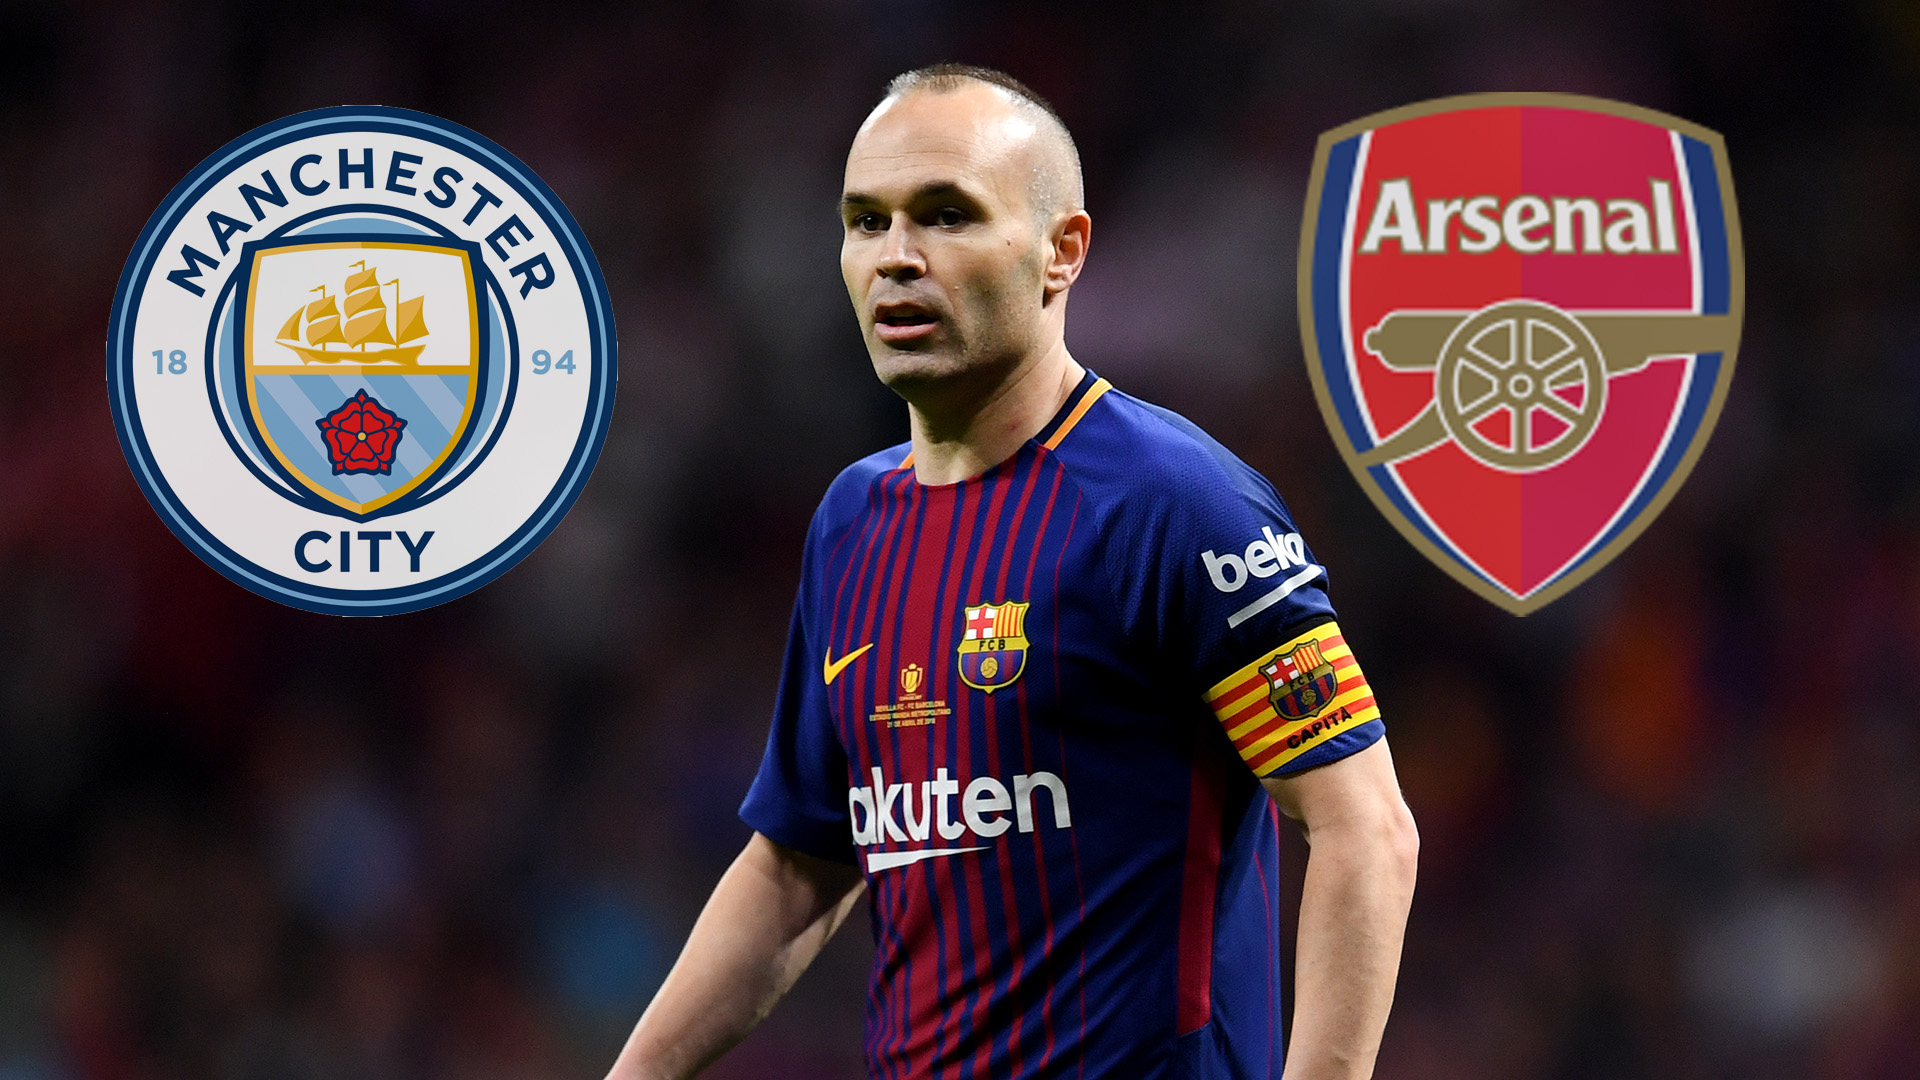 Transfer News Rumours Live Man City And Arsenal Battle For Iniesta Goal Com